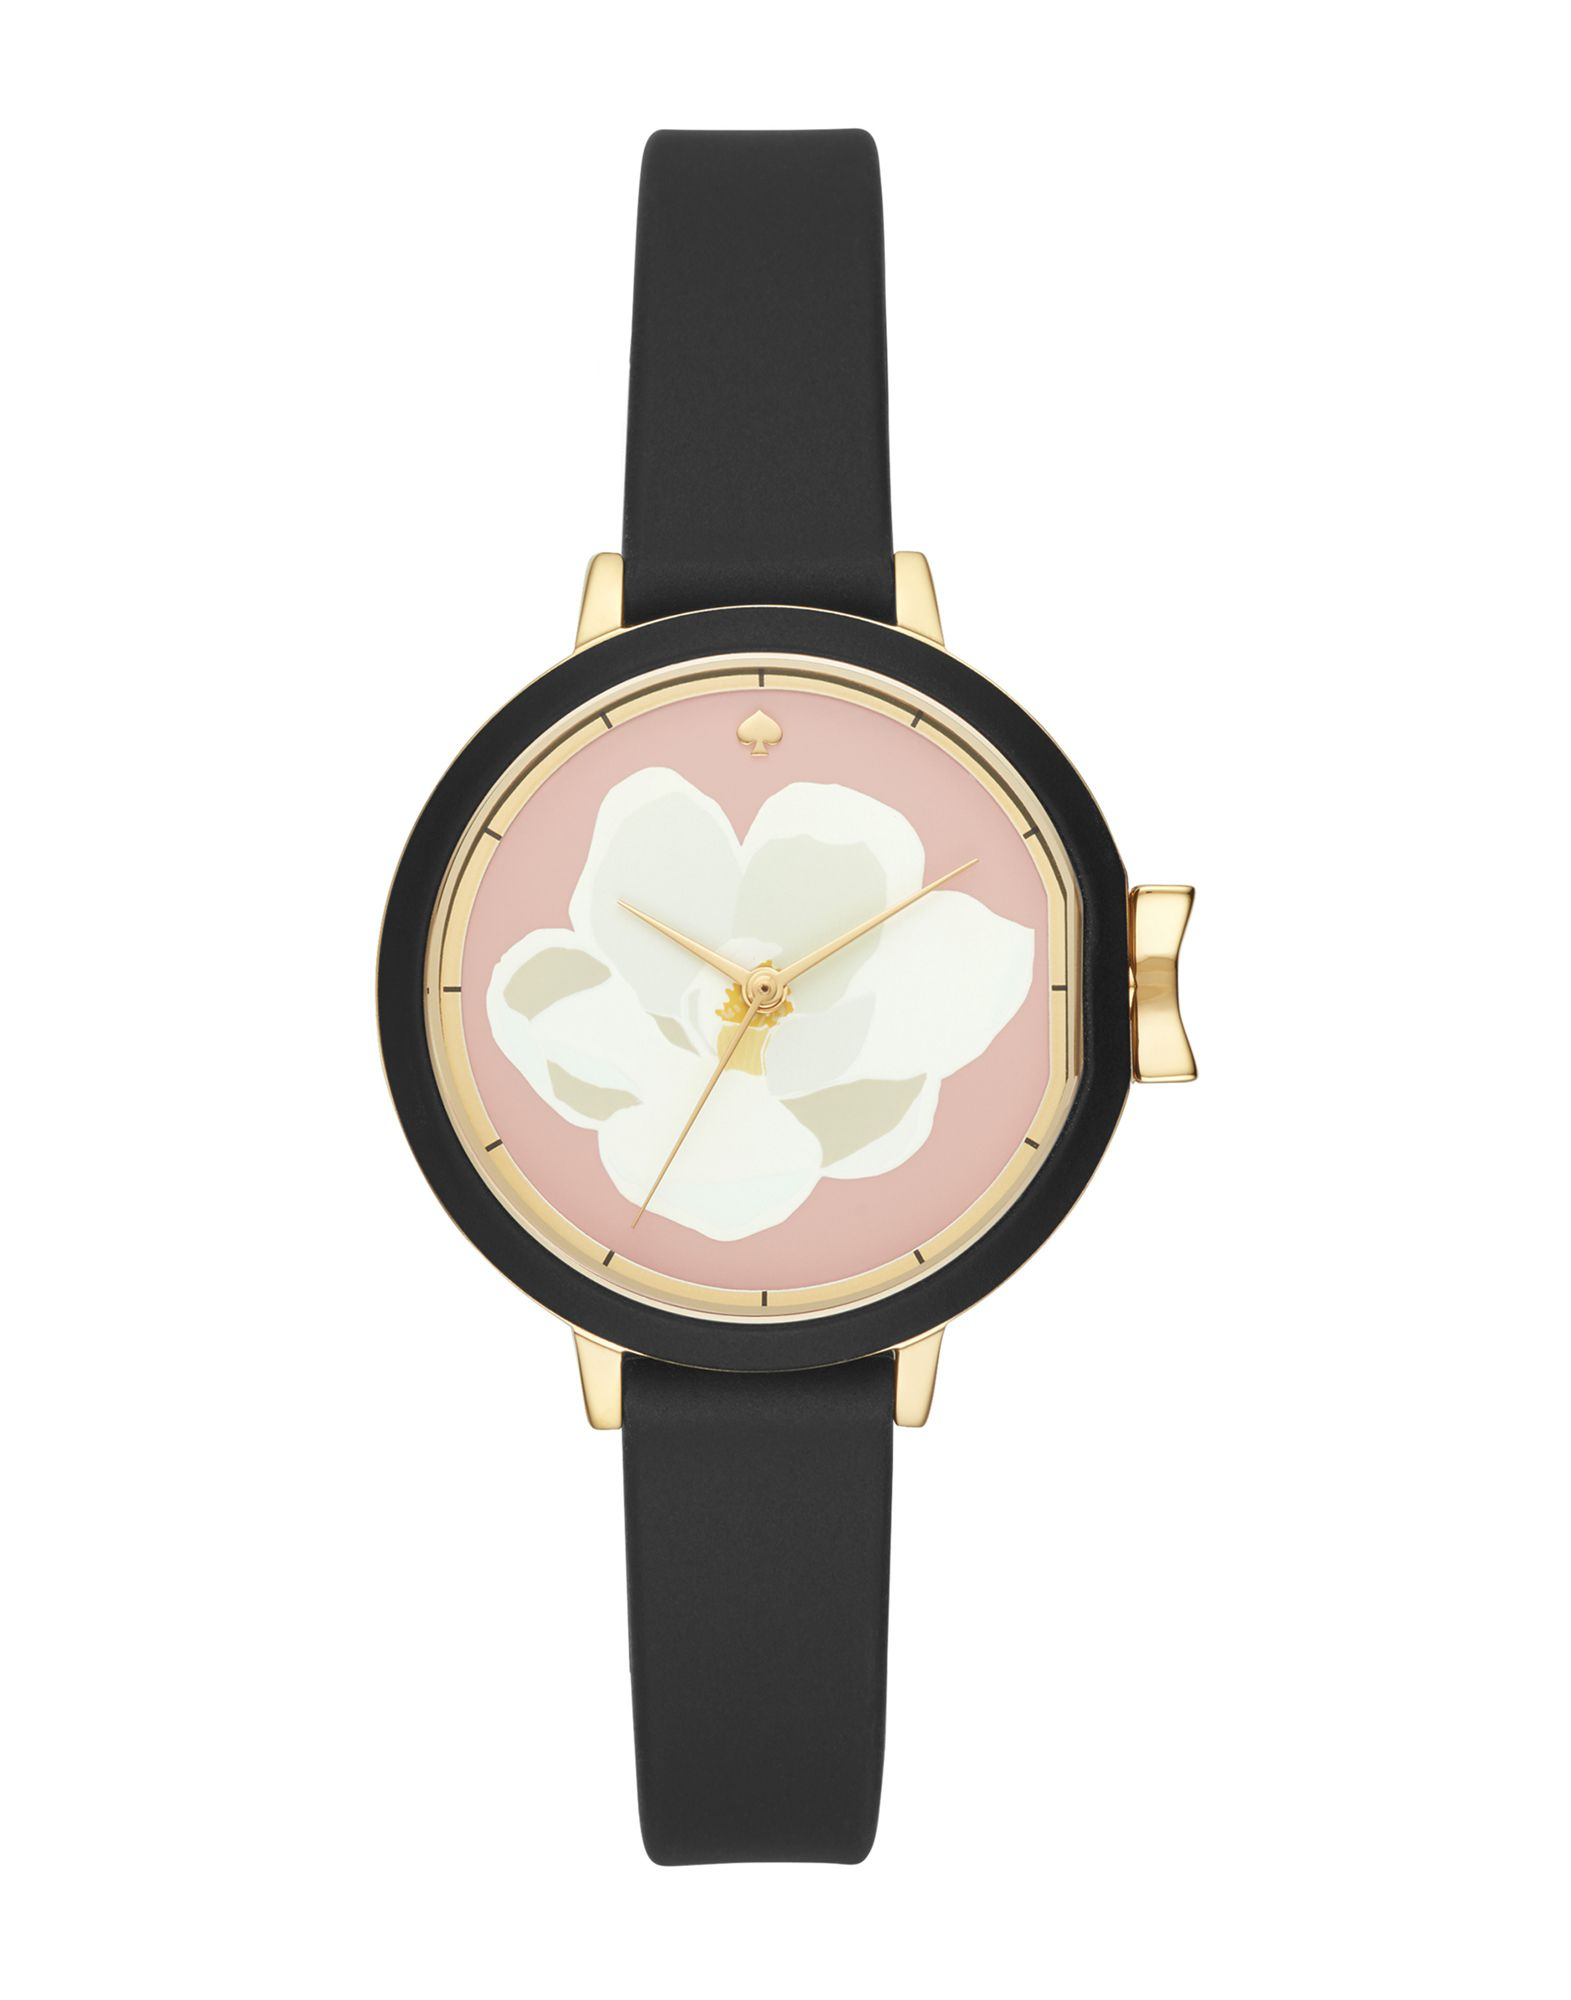 Orologio Da Polso Kate Spade New York Park Row Silicone - Donna - Acquista online su